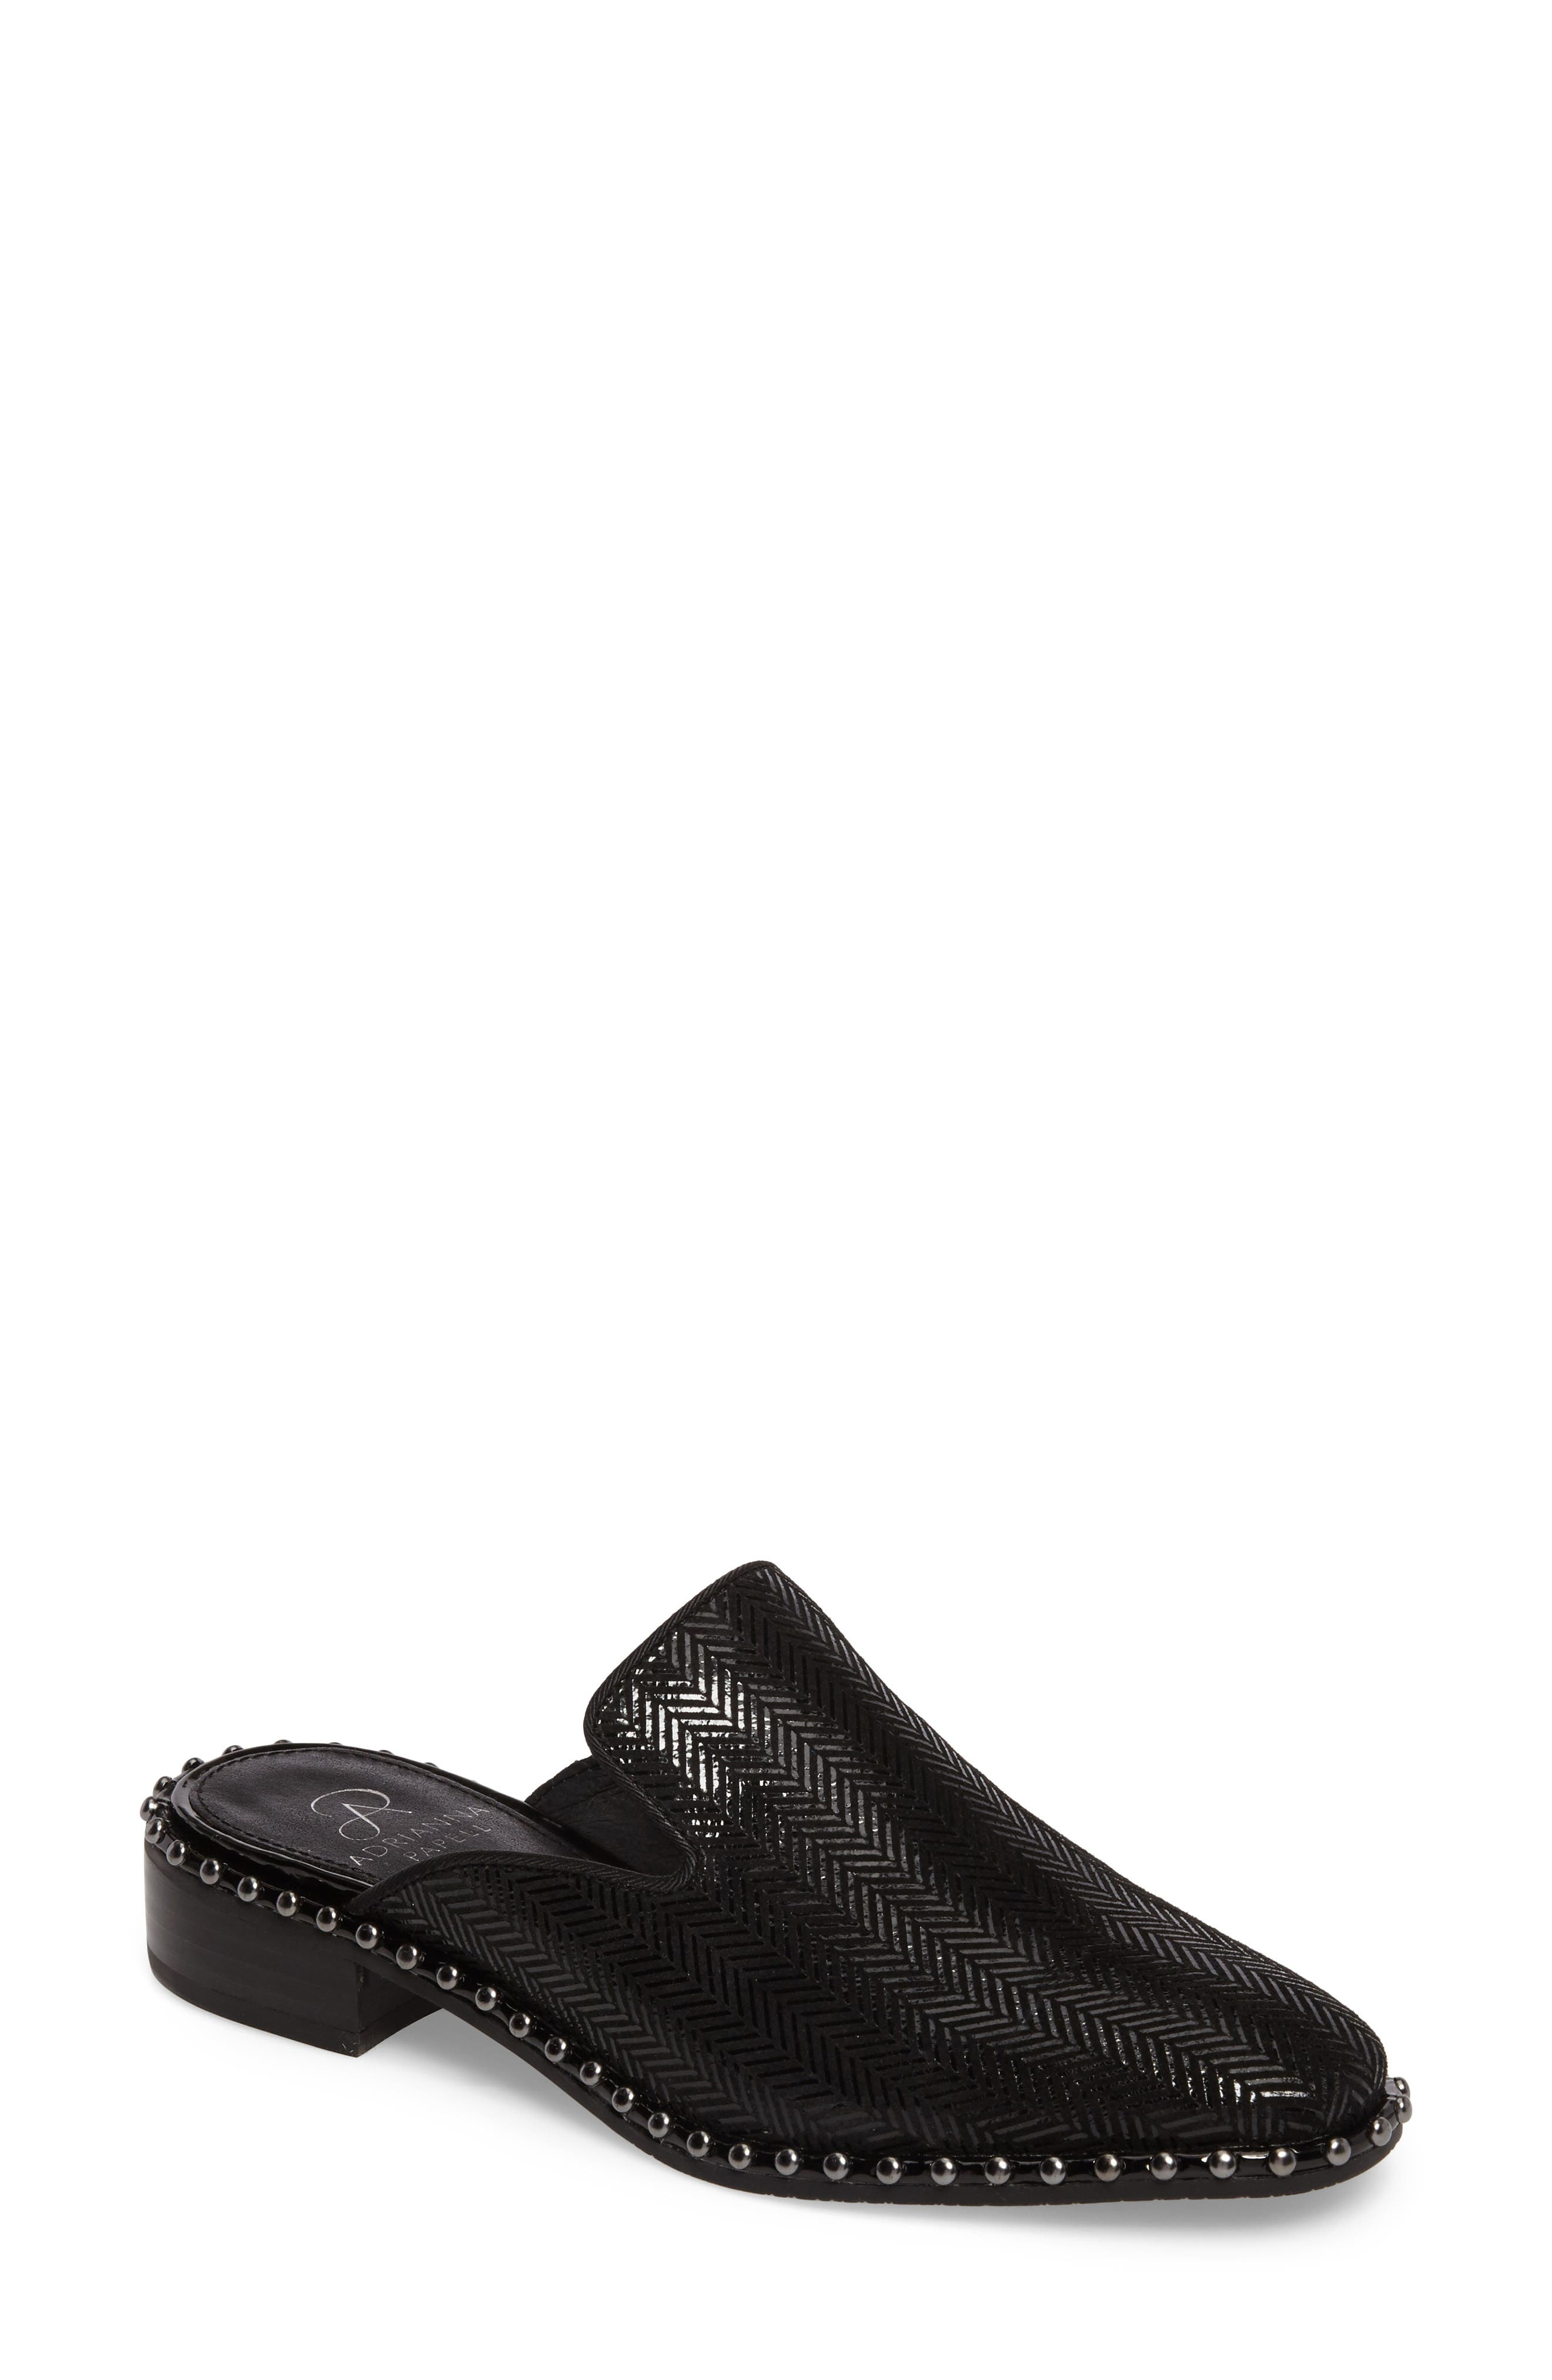 Adrianna Papell 'Pam' Studded Mule (Women)